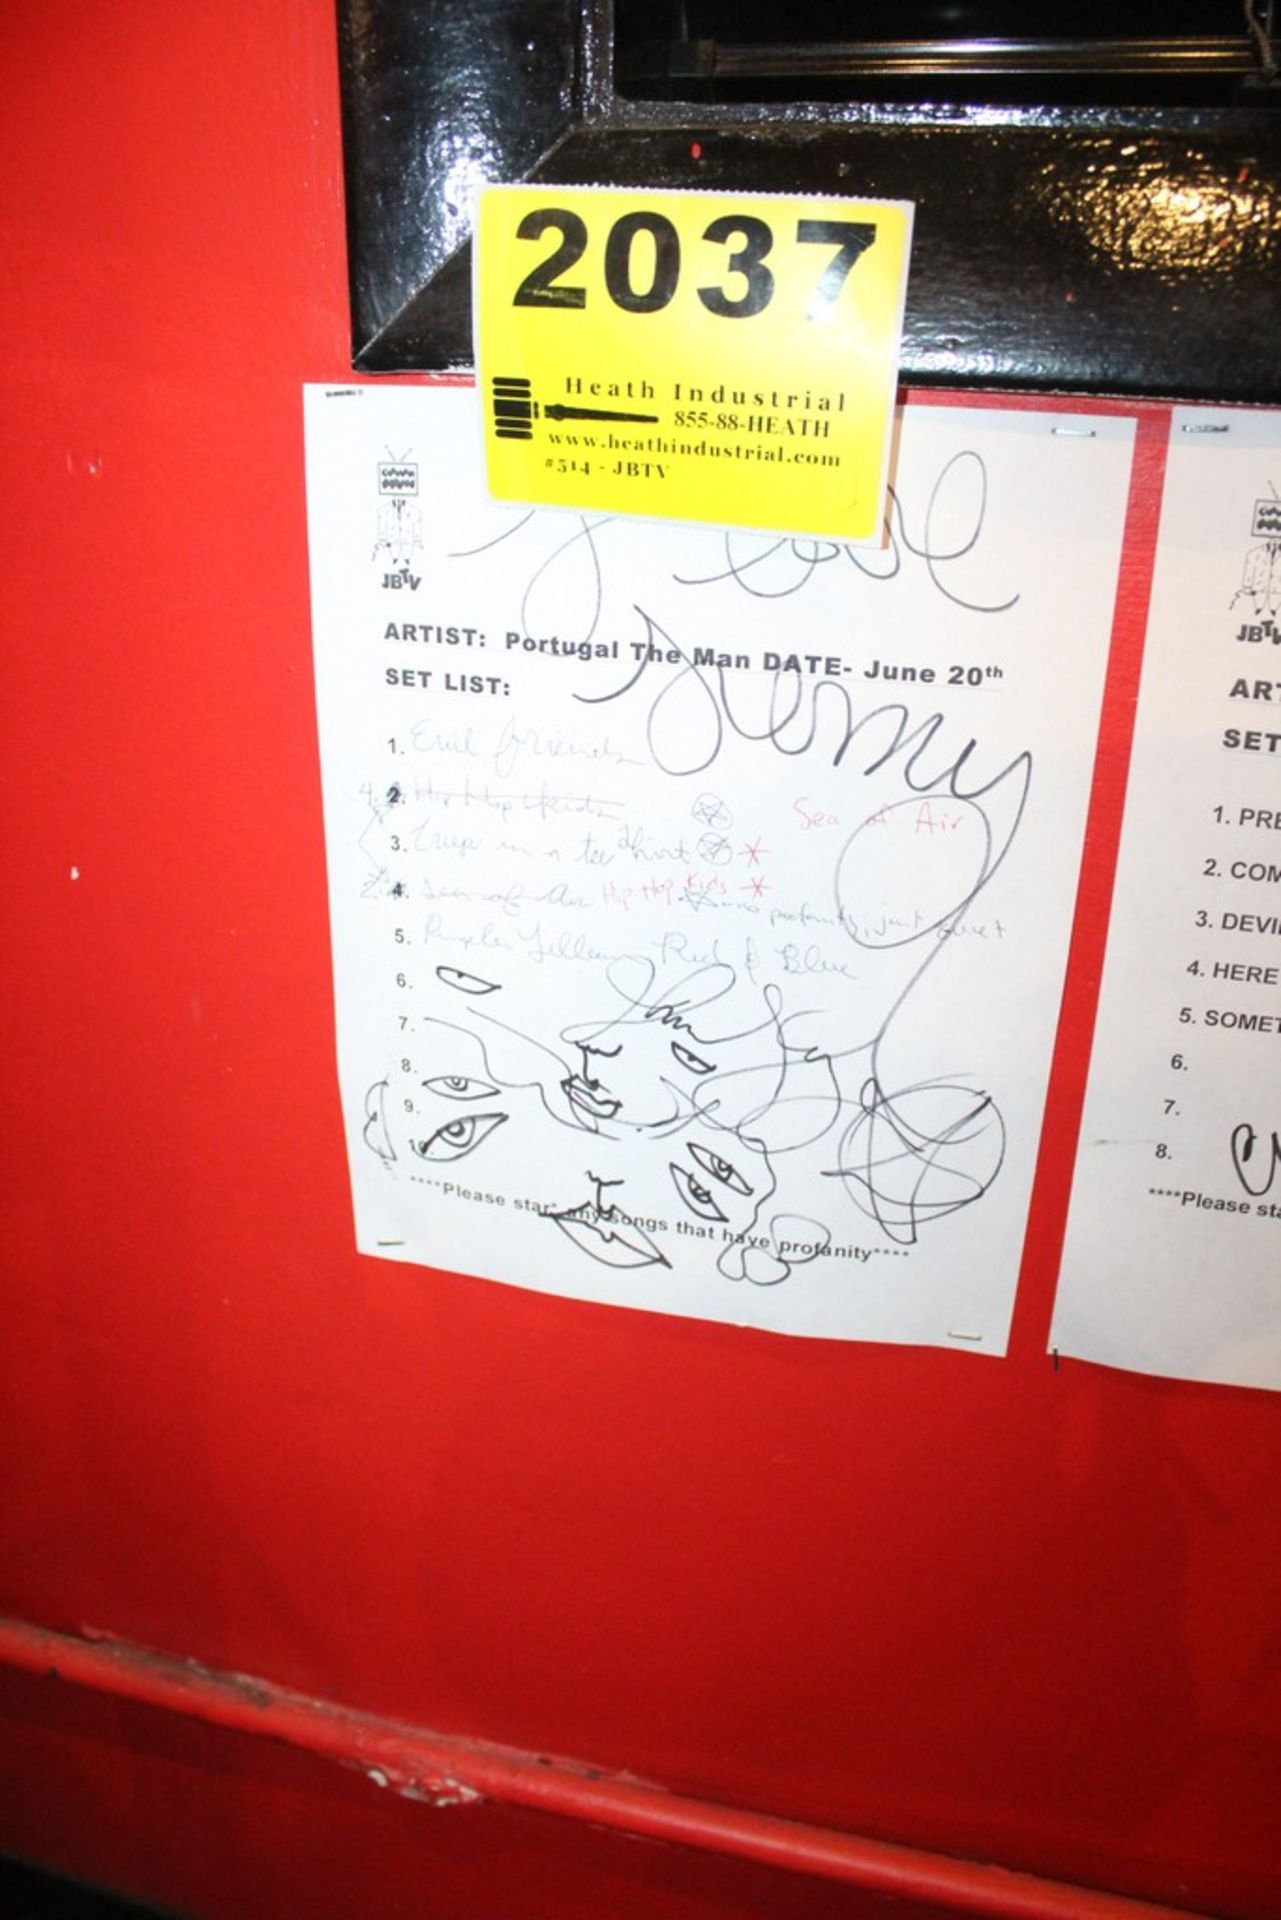 Lot 2037 - Portugal the Man Signed Set List